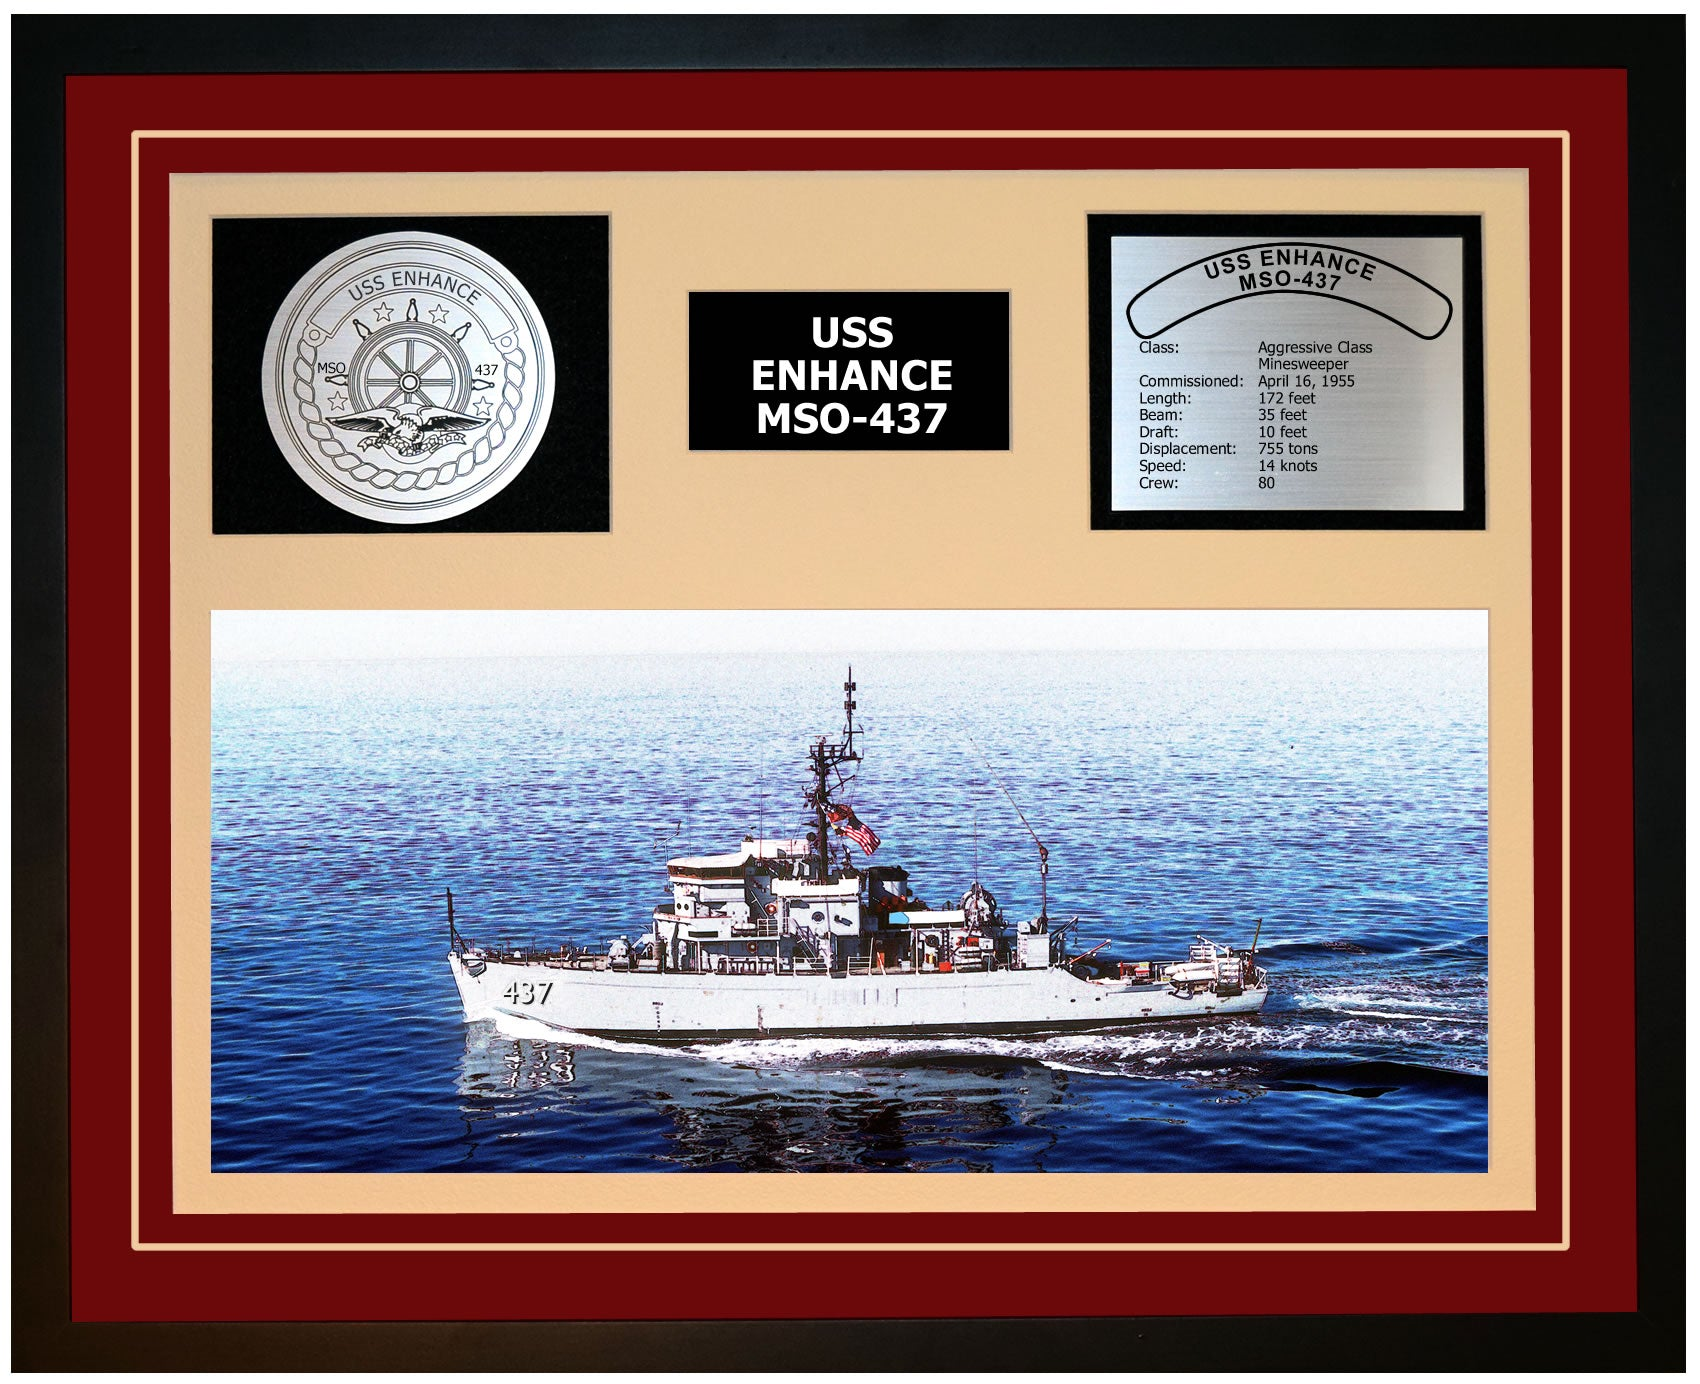 USS ENHANCE MSO-437 Framed Navy Ship Display Burgundy